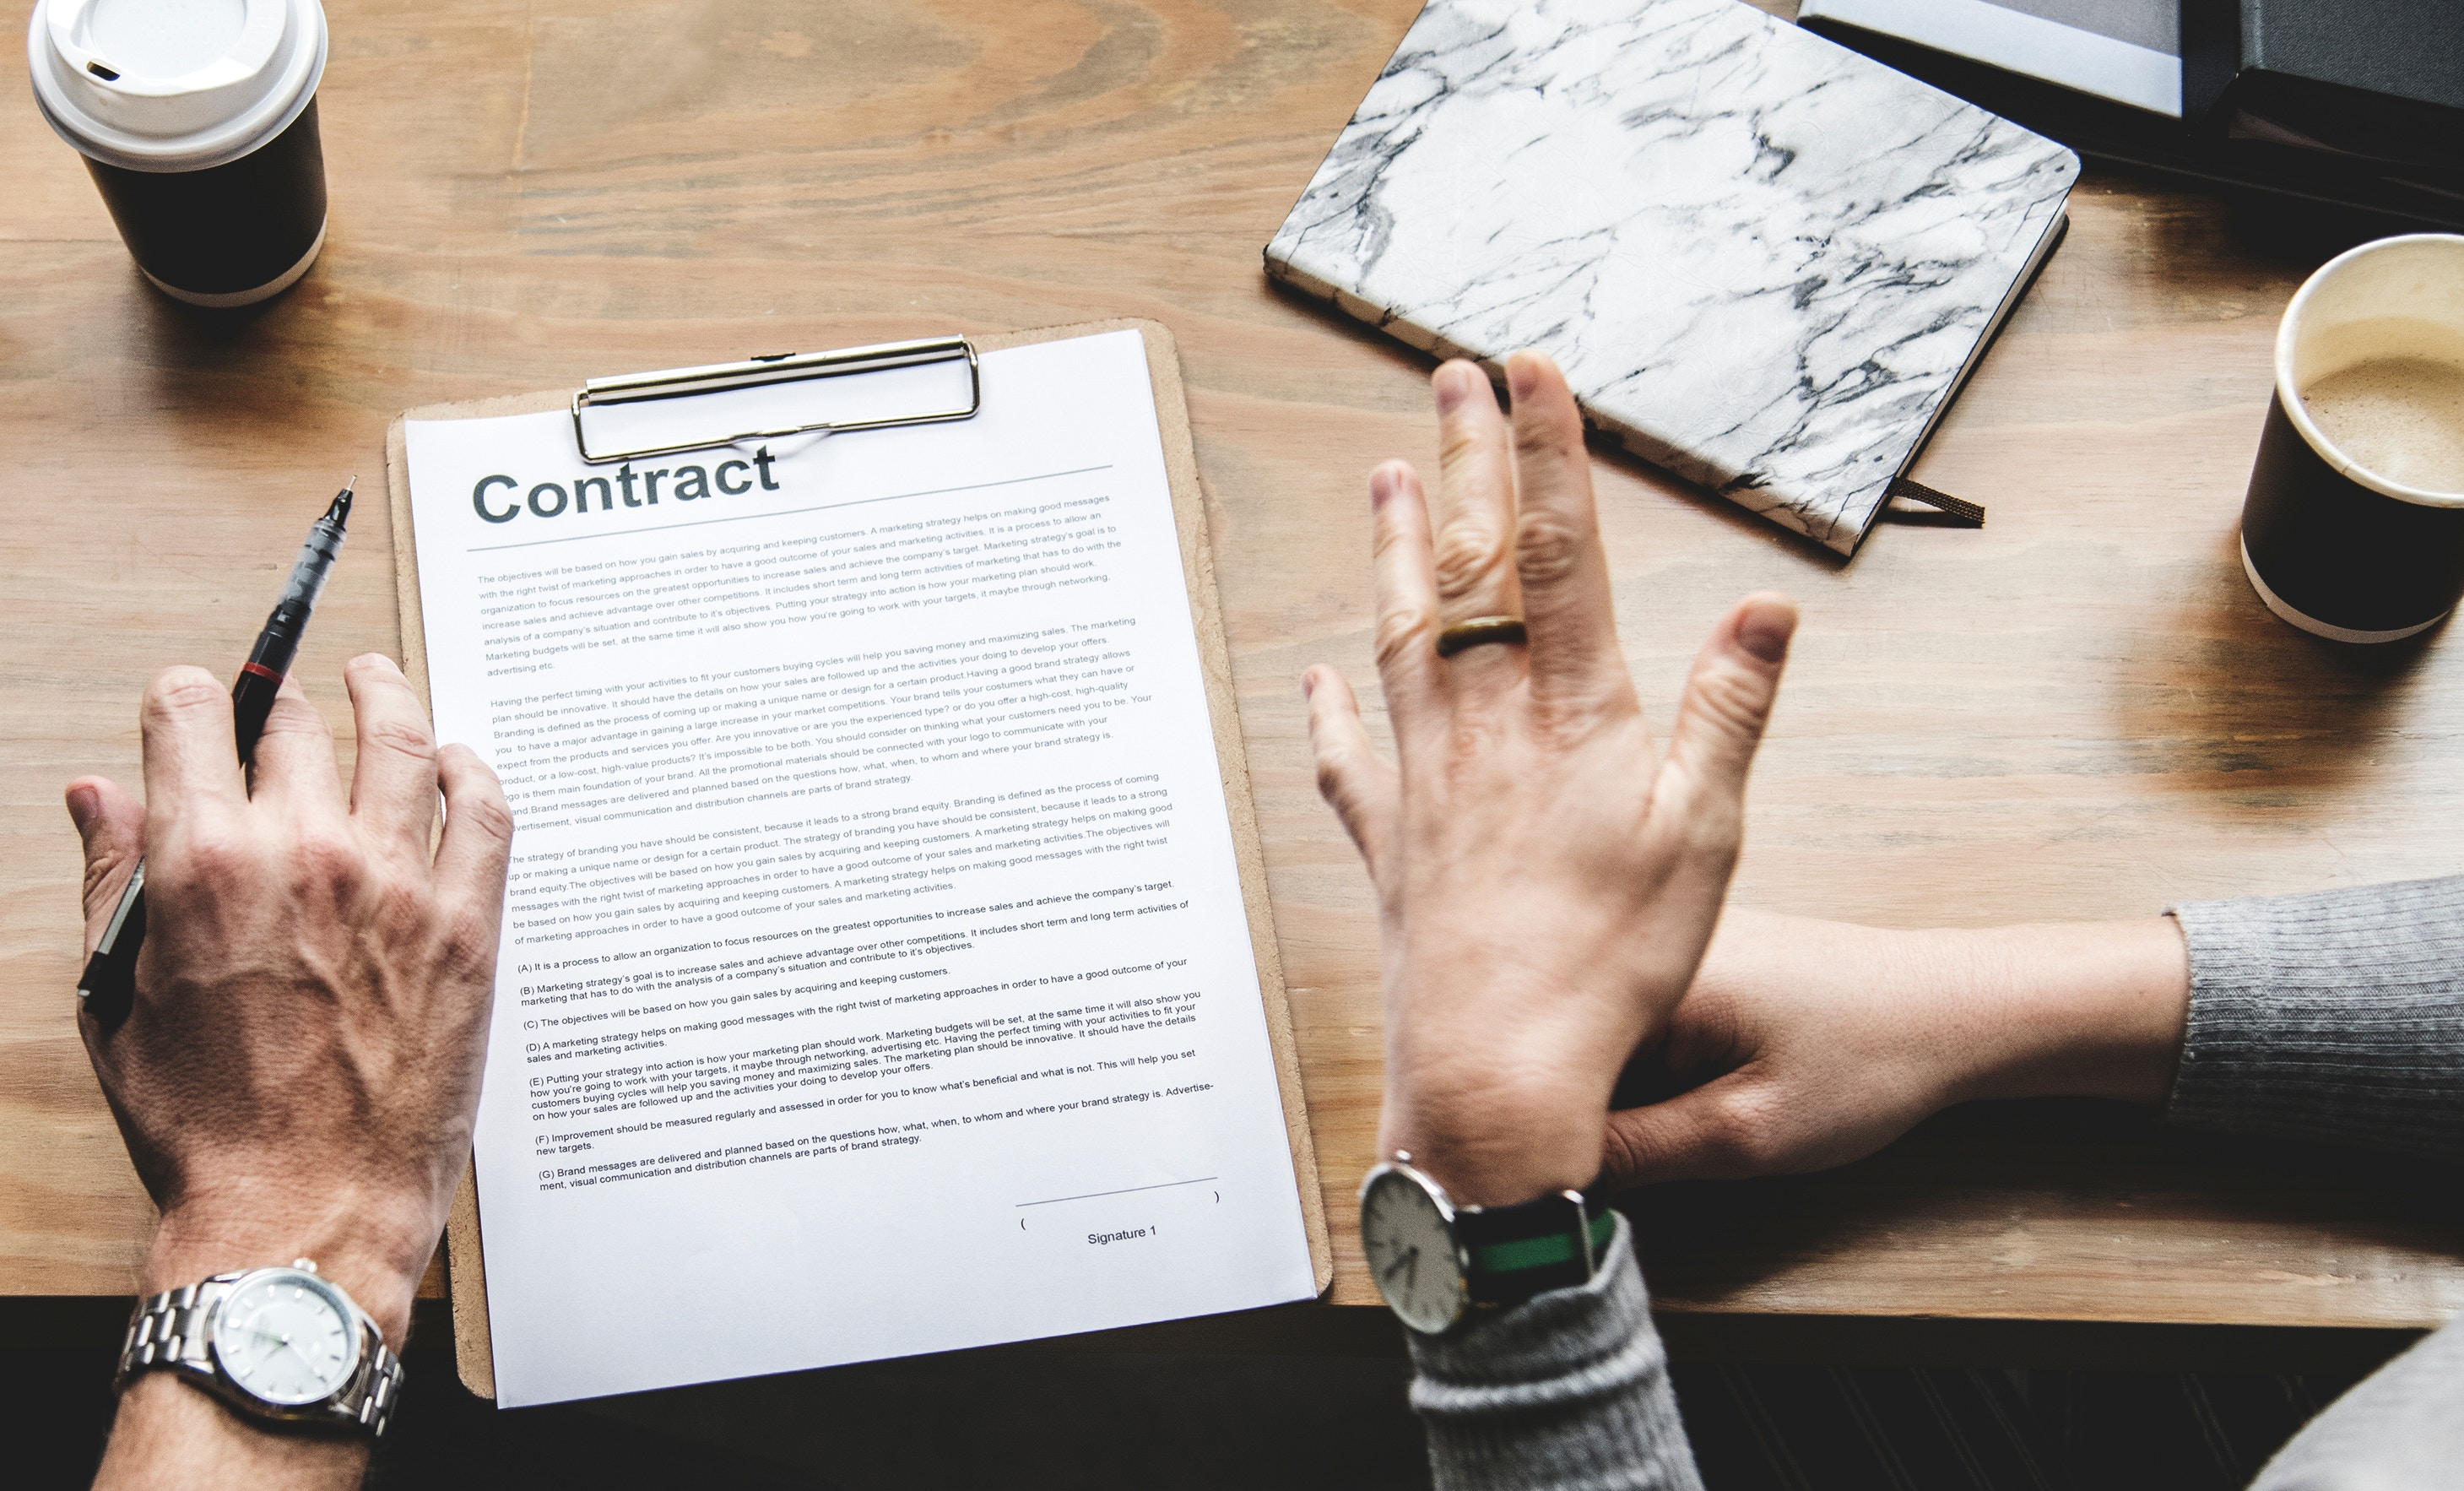 The Statute of Frauds helps define fraud in contract law.